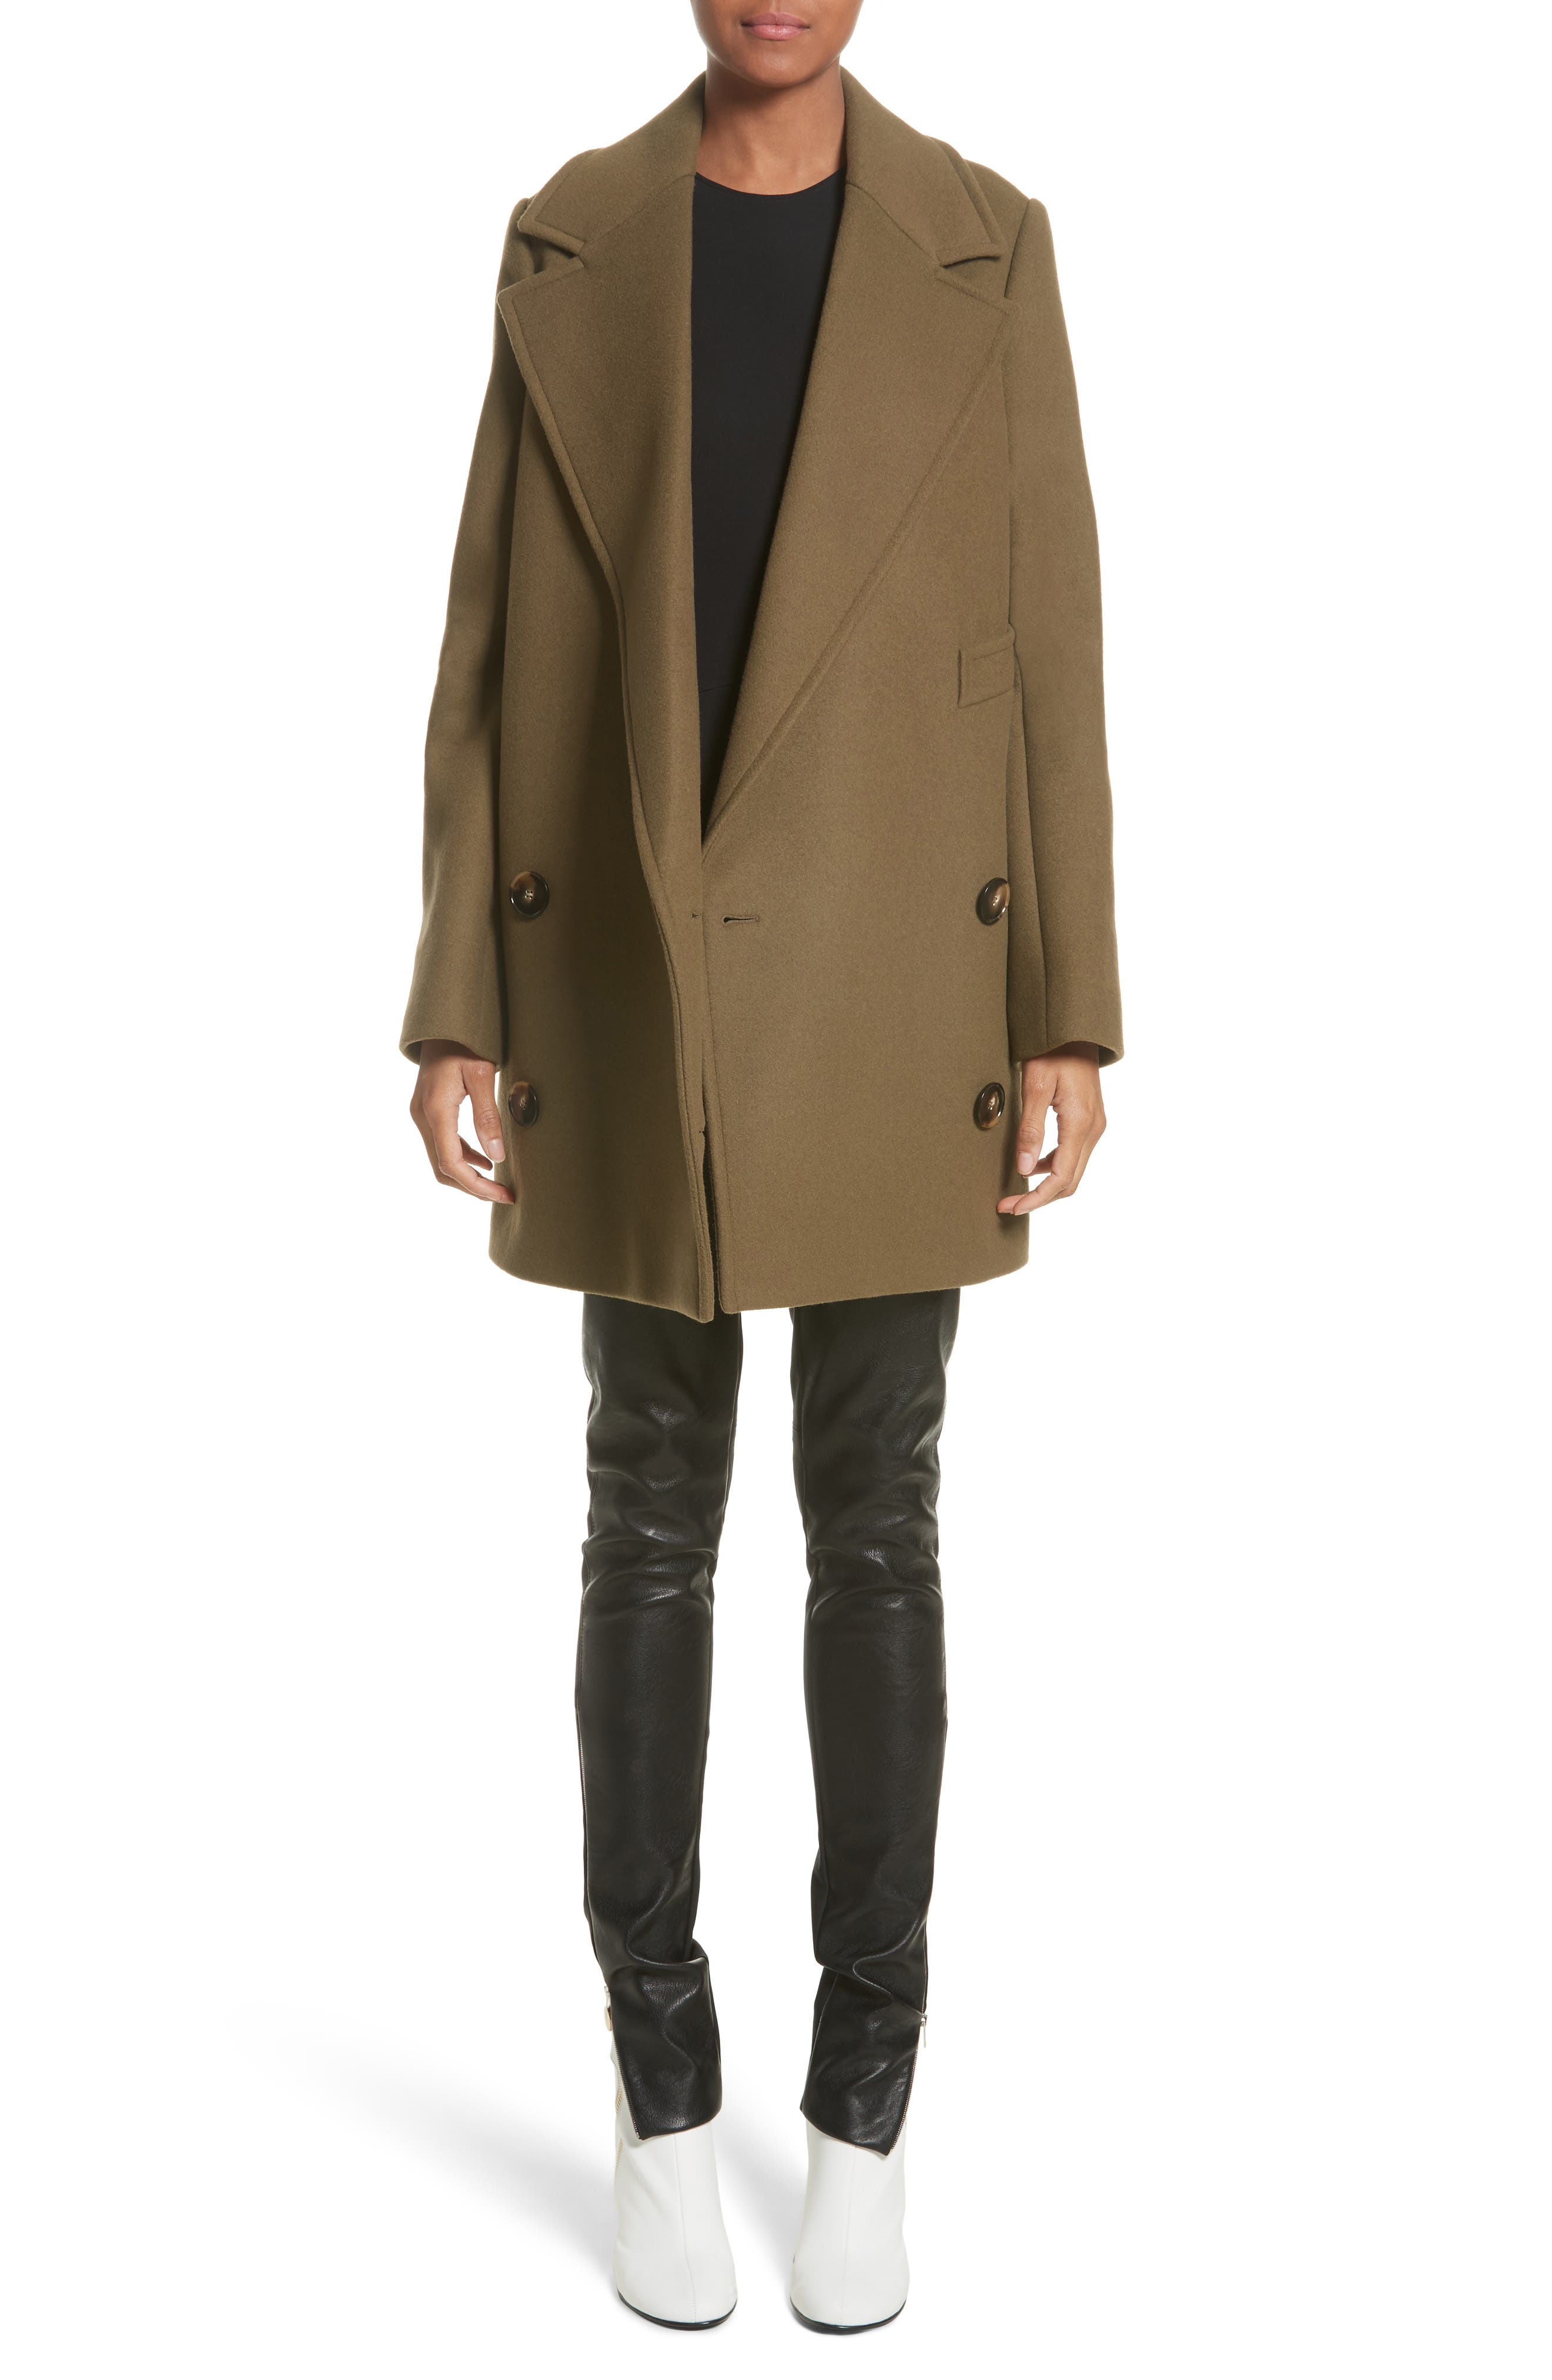 Stella McCartney 'Edith' Double Breasted Wool Blend Coat